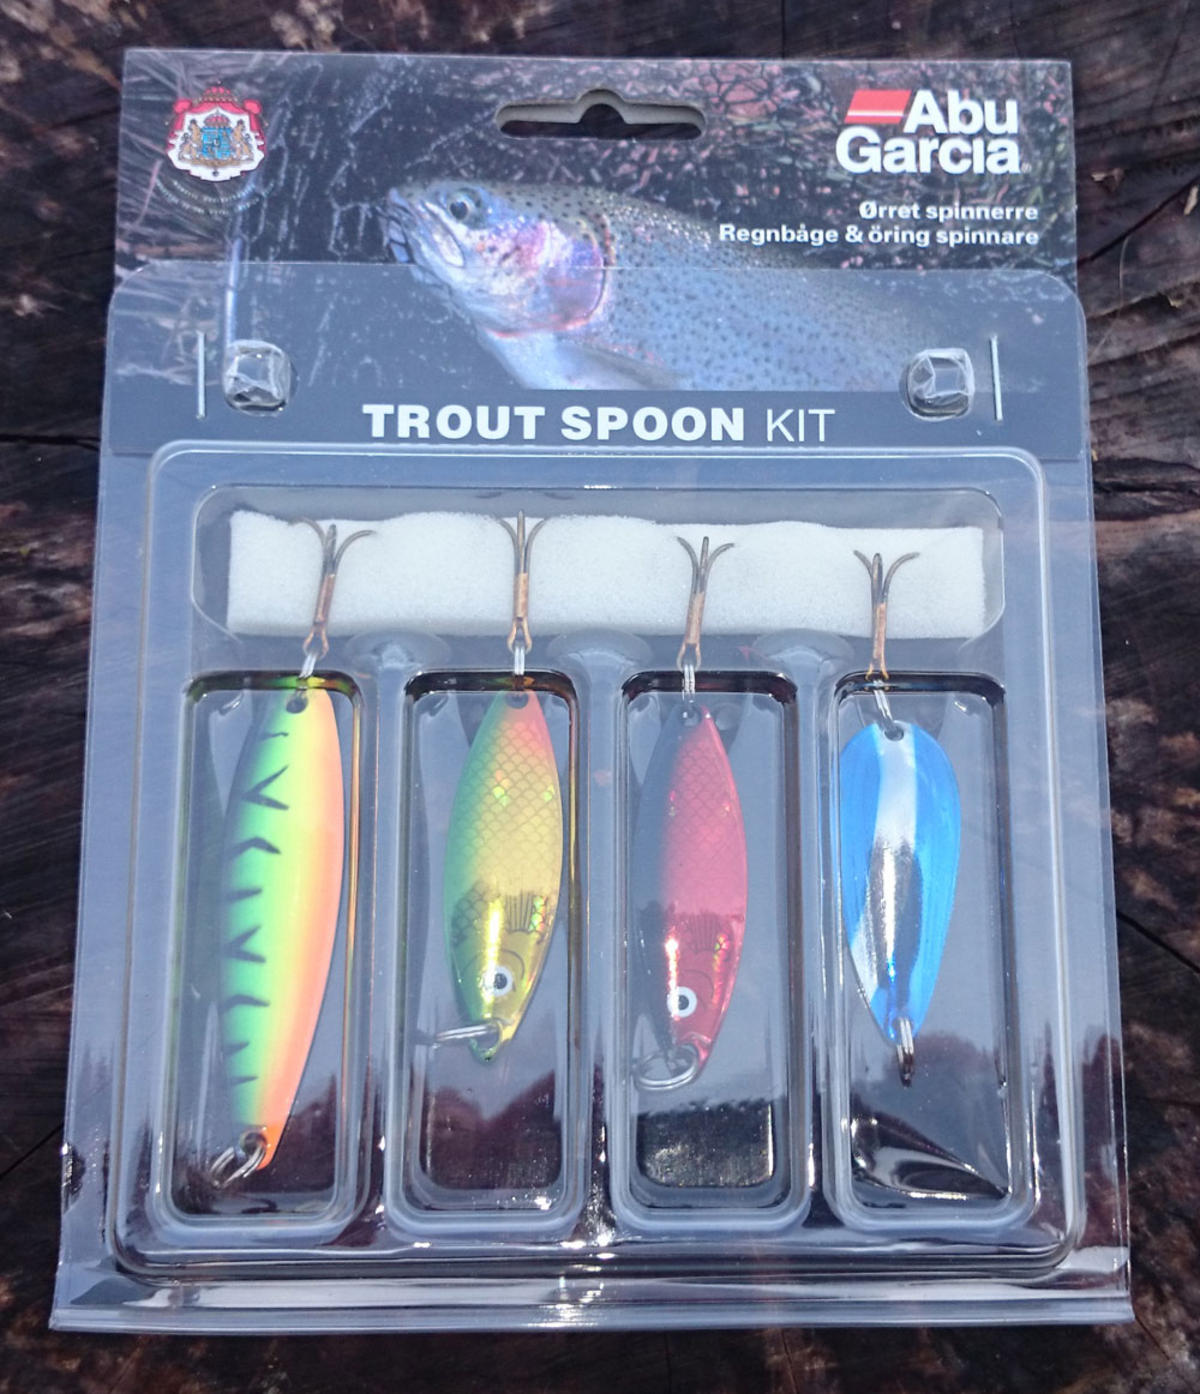 ABU GARCIA TROUT SPOON LURE KIT ASSORTED COLOURS 4 PACK 1115258